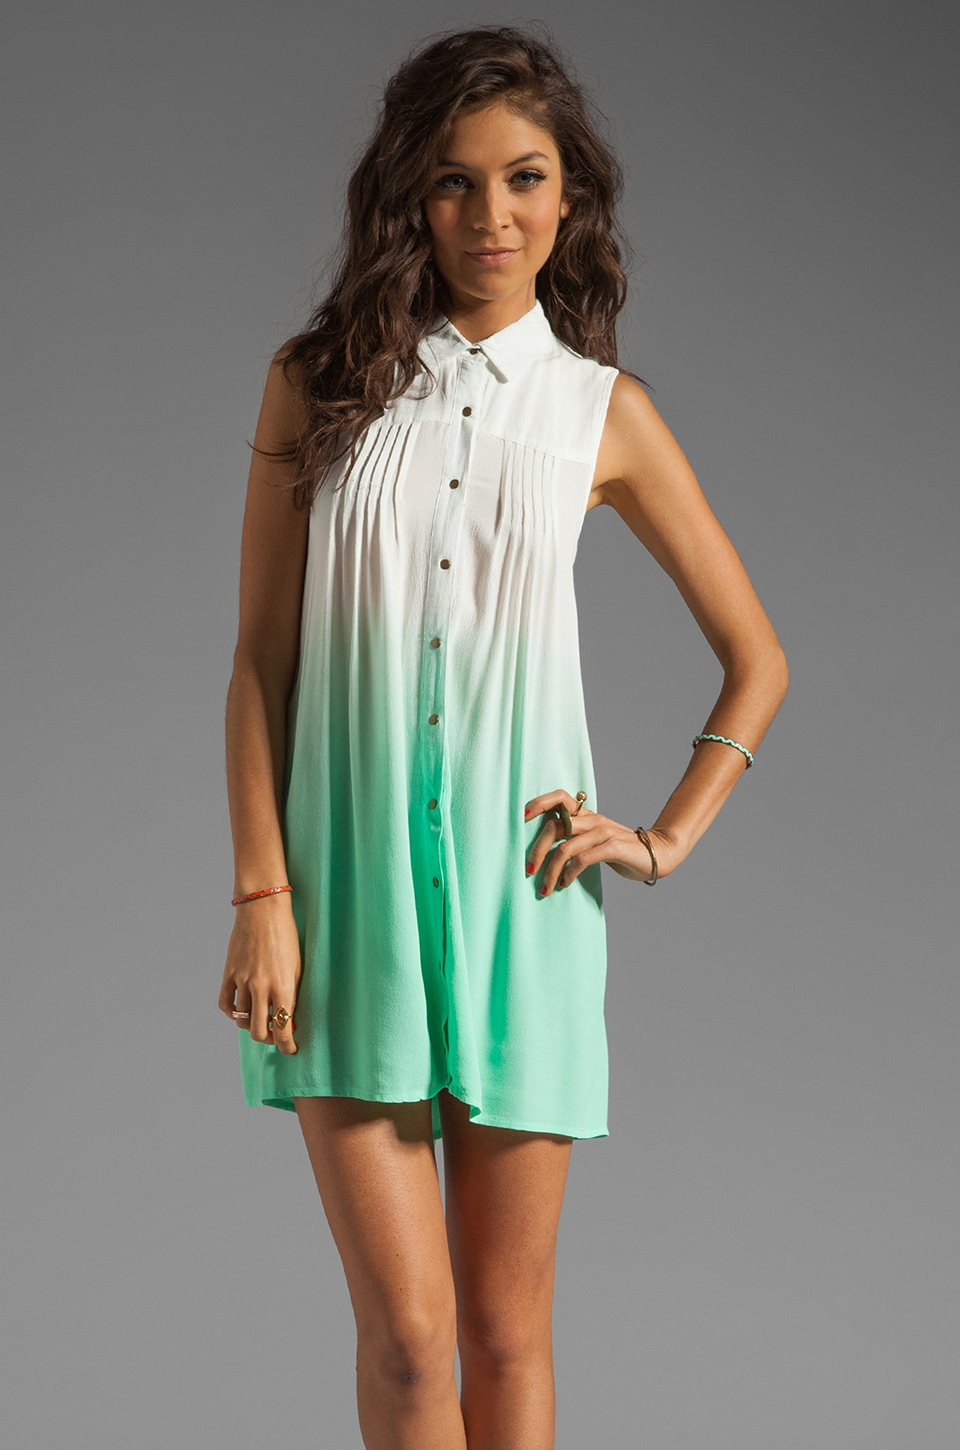 MINKPINK Great White Ombre Shirt Dress in Aqua